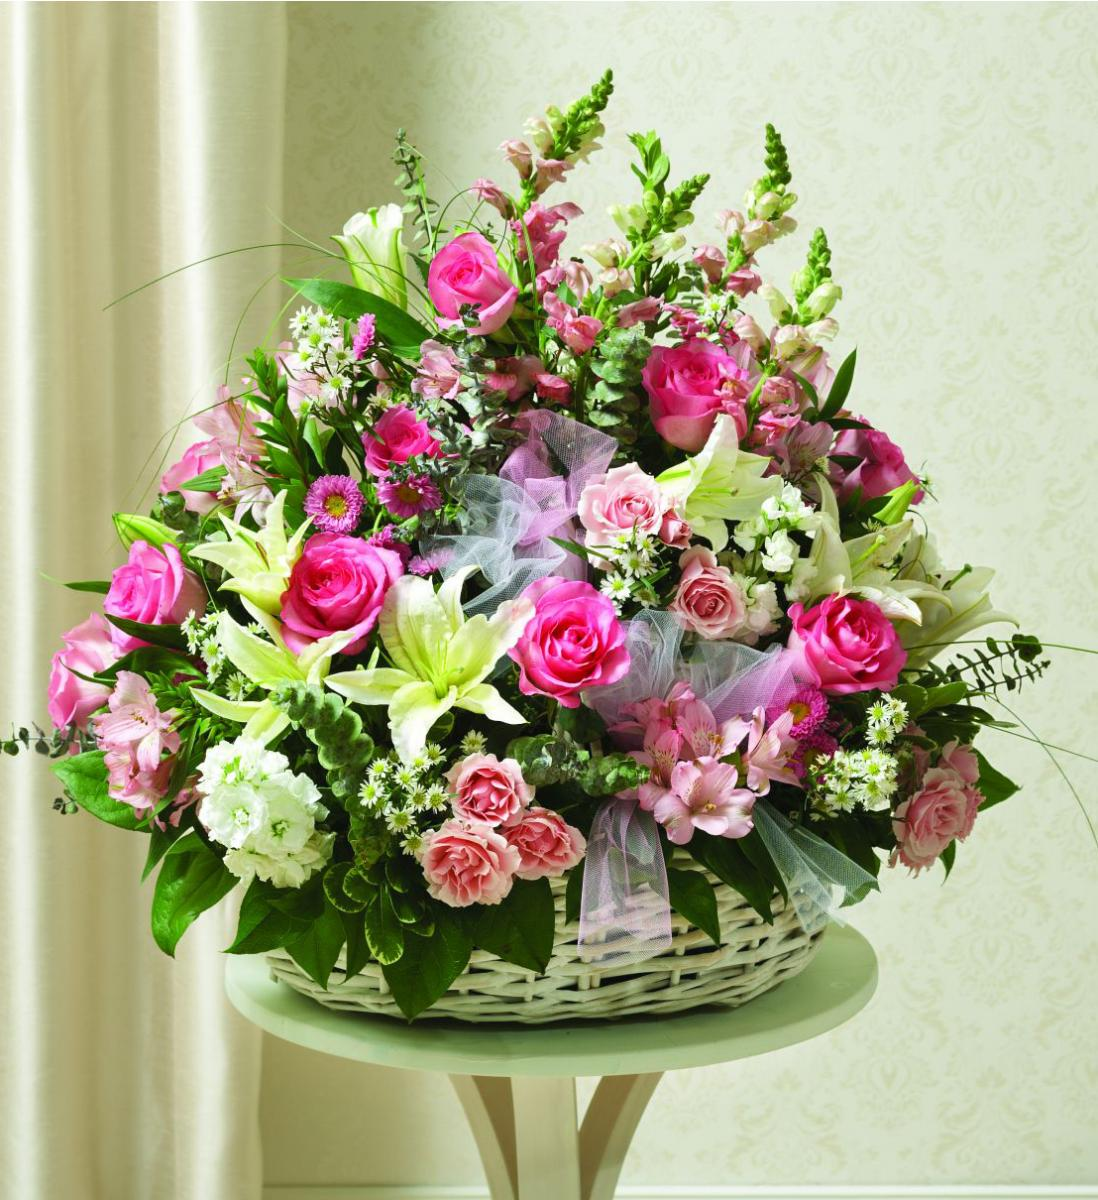 Lovely Basket Divine Flowers From The Heart